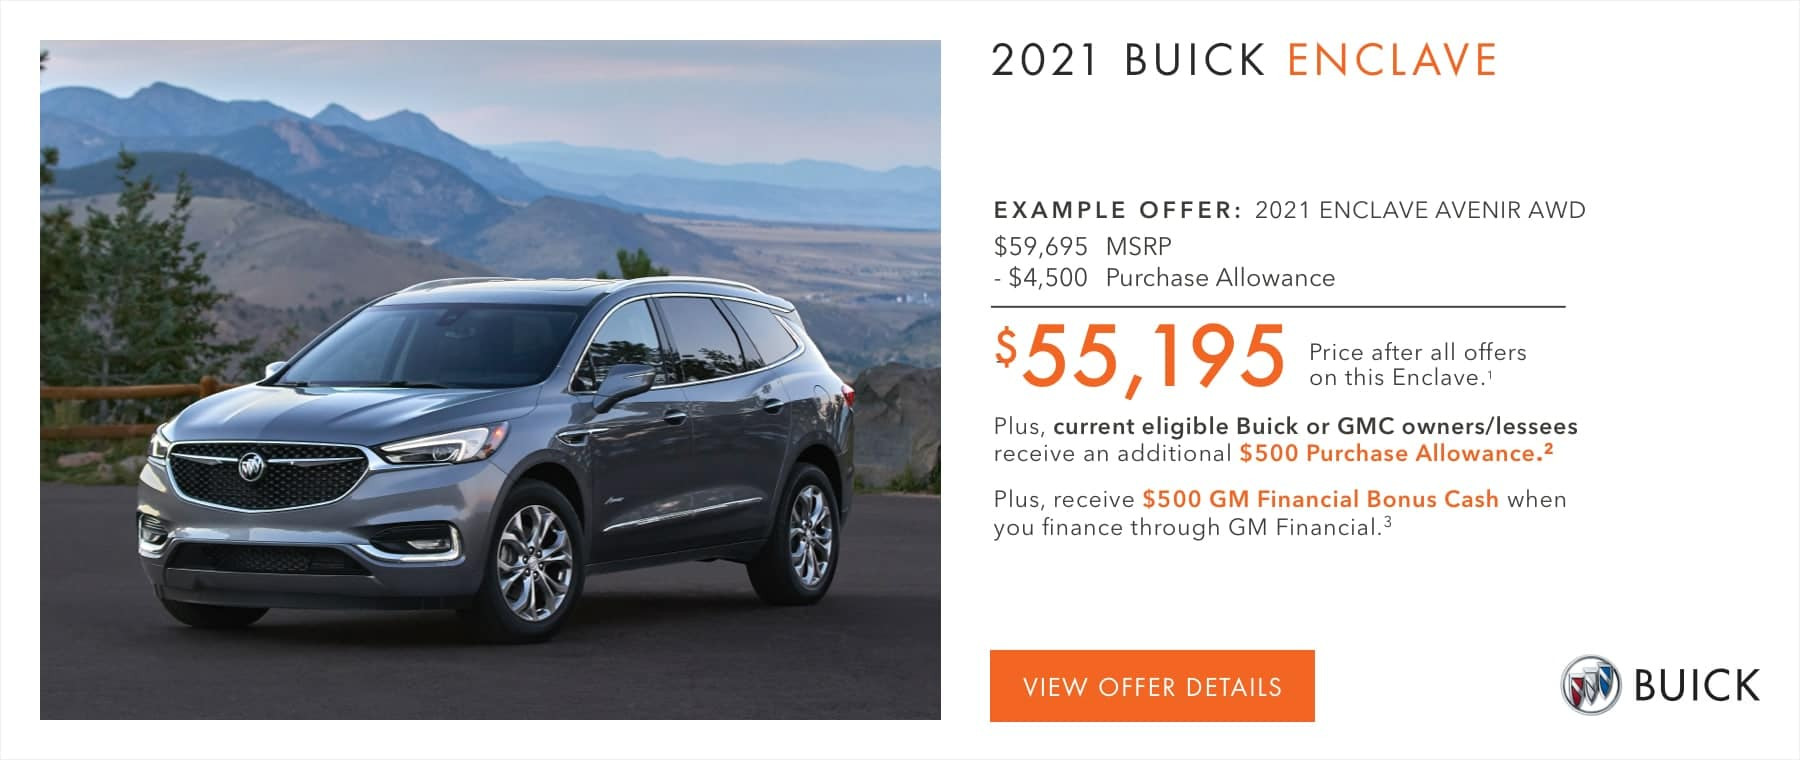 EXAMPLE OFFER: 2021 ENCLAVE AVENIR AWD $59,695 MSRP -$4,500 Purchase Allowance $55,195 Price after all offers on this Enclave.1 Plus, current eligible Buick or GMC owners/lessees receive an additional $500 Purchase Allowance.2 Plus, receive $500 GM Financial Bonus Cash when you finance through GM Financial.3